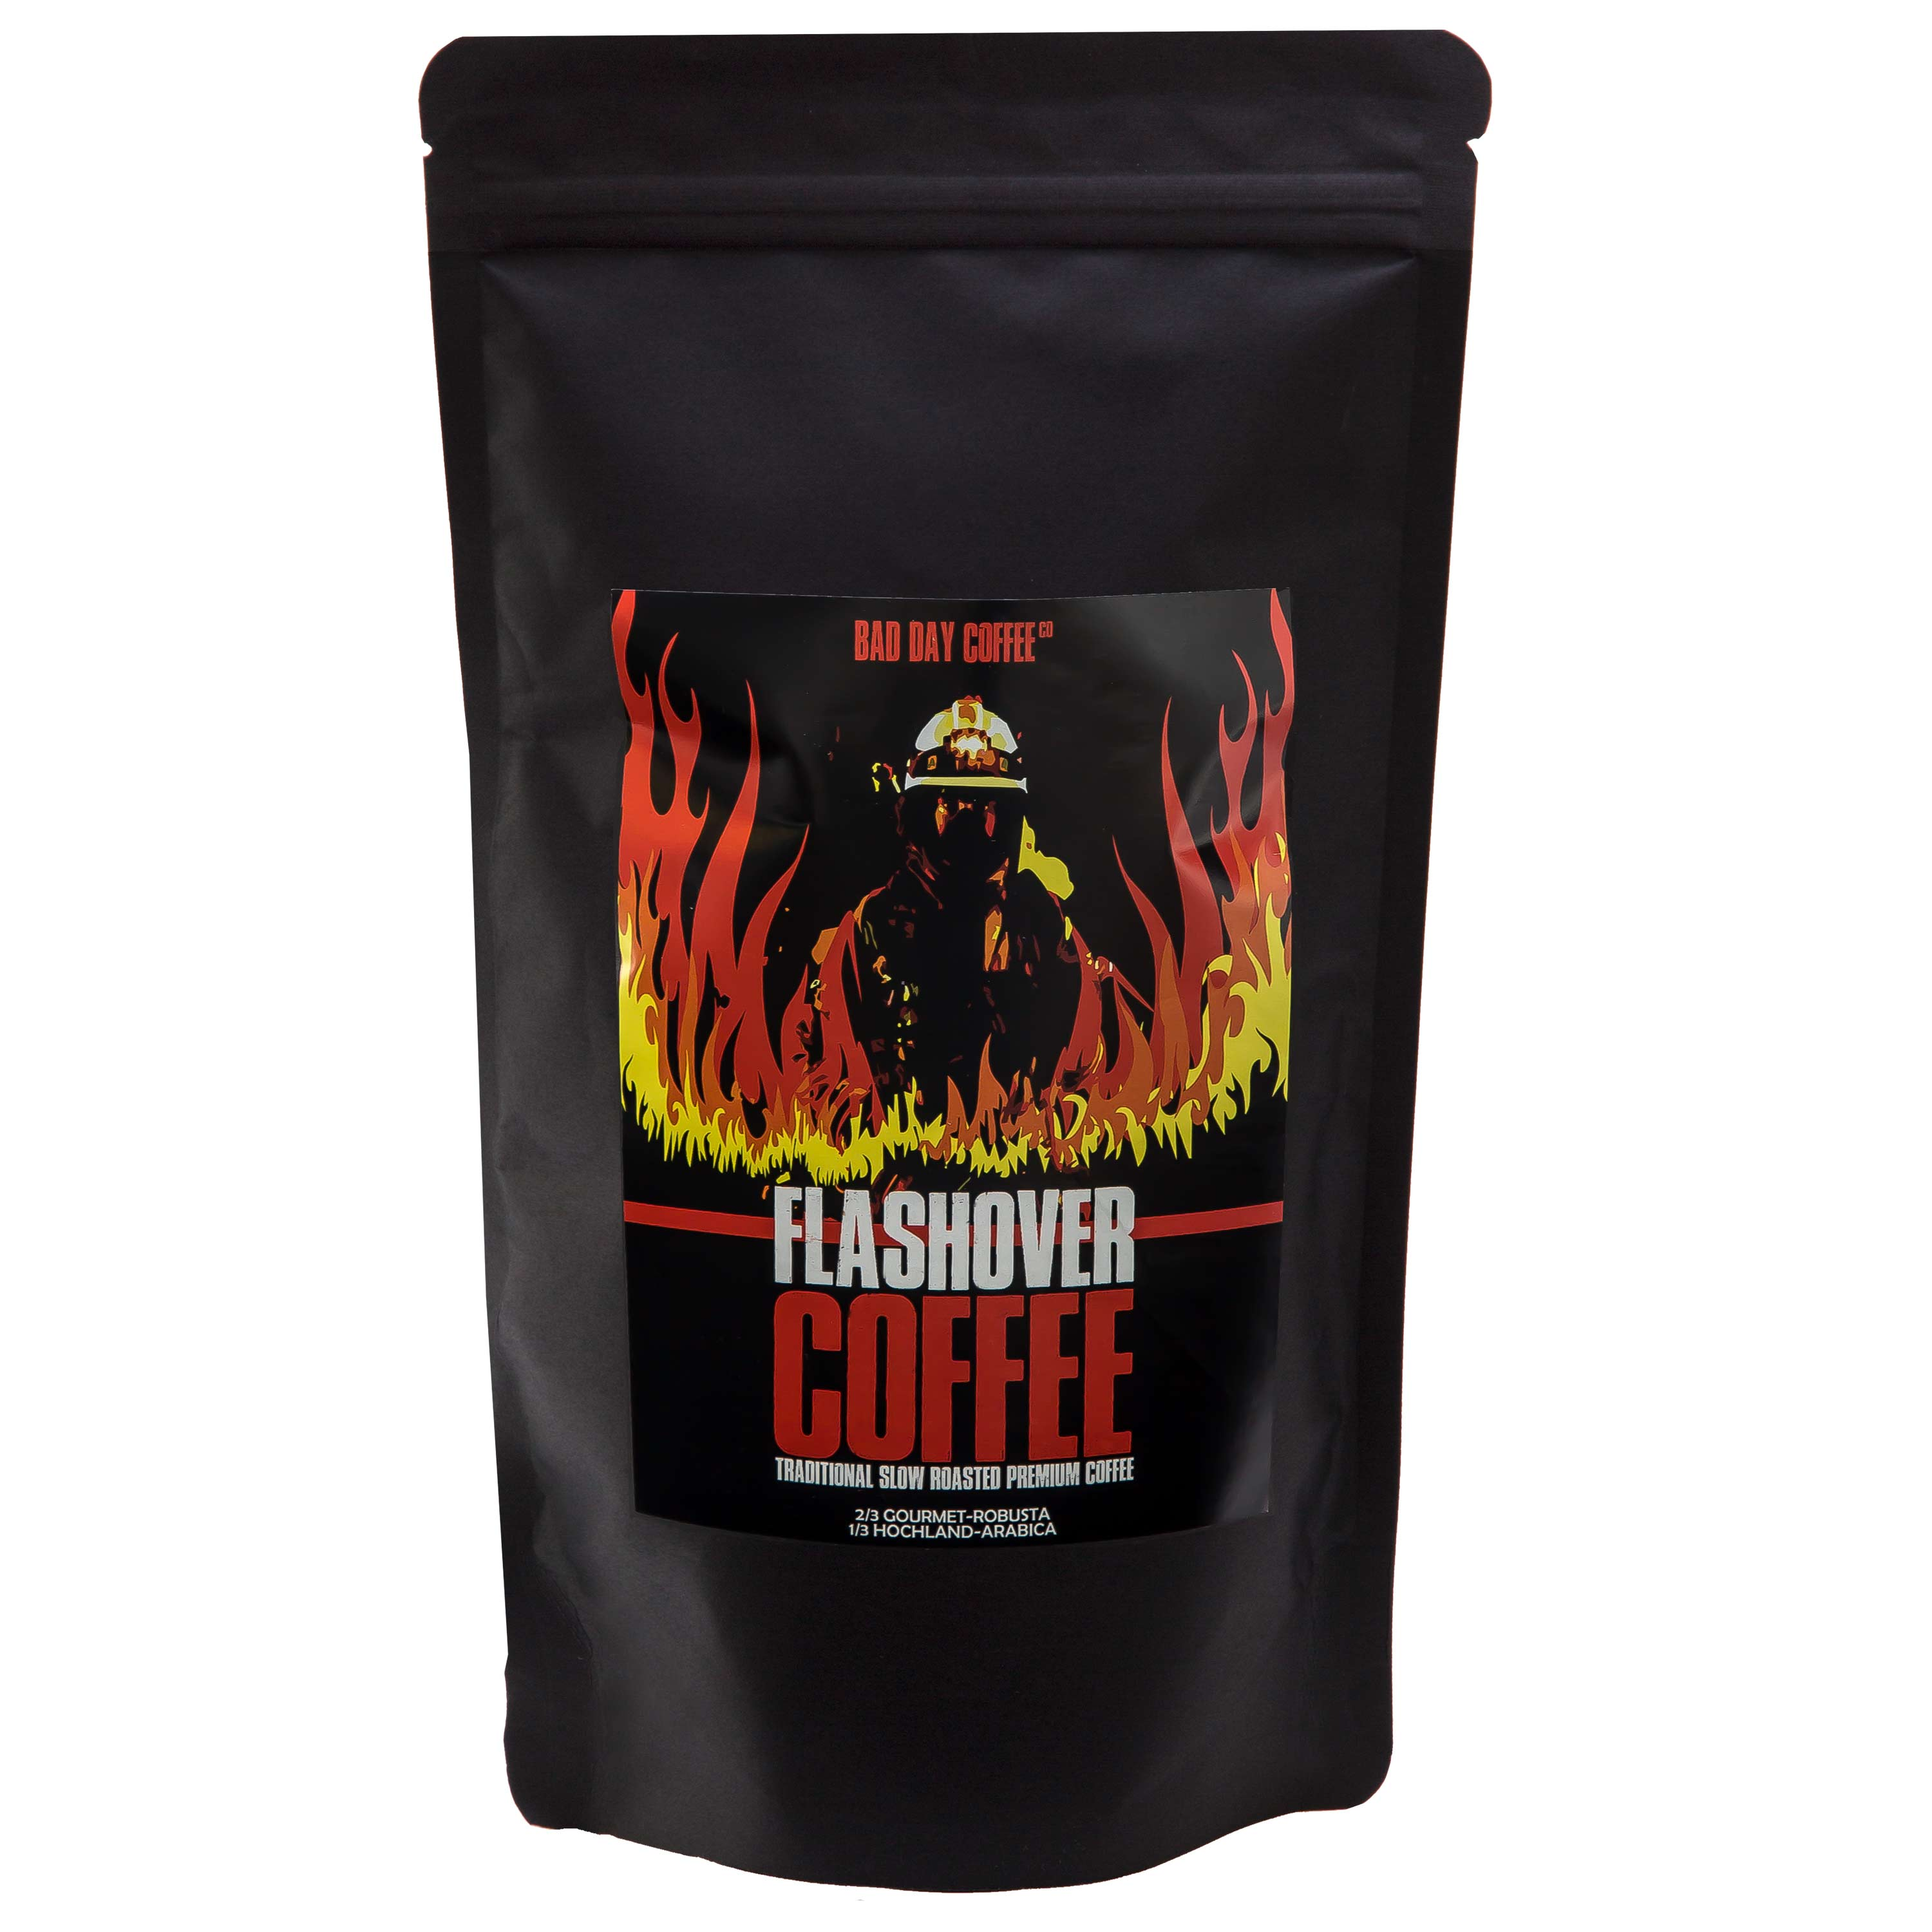 Bad Day Coffee Flashover Kaffee ganze Bohne 500 g